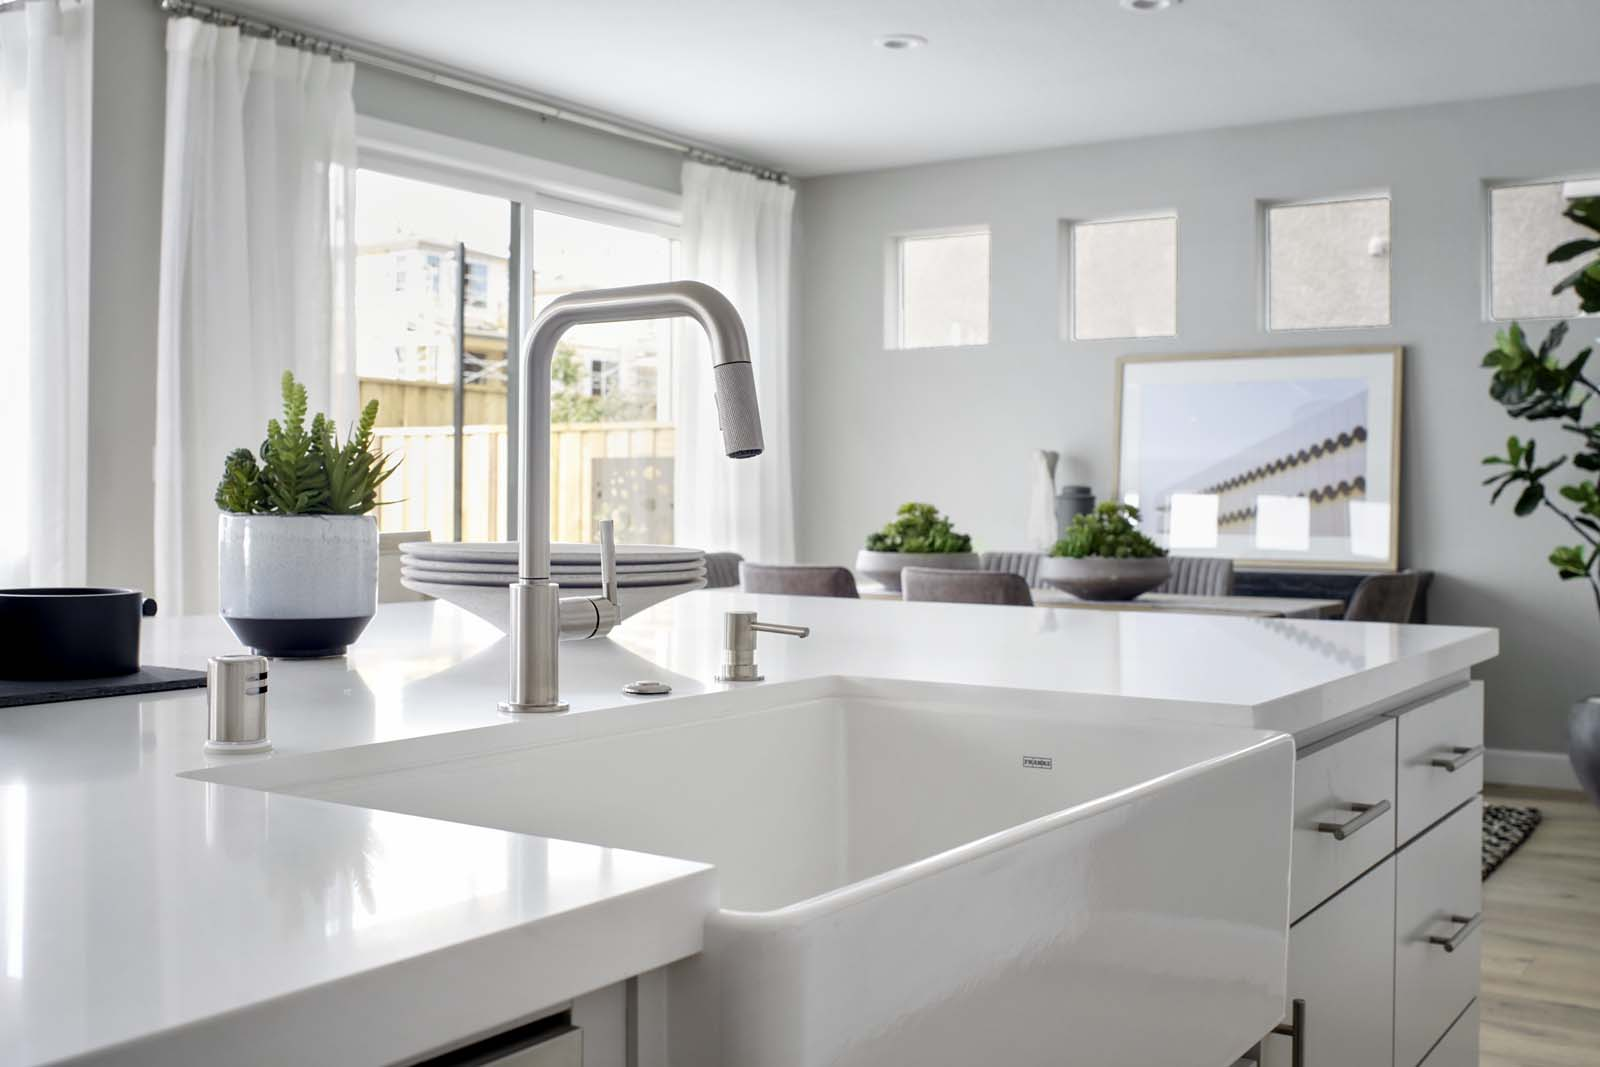 Residence 2 Kitchen | Mulholland at Boulevard in Dublin, CA | Brookfield Residential